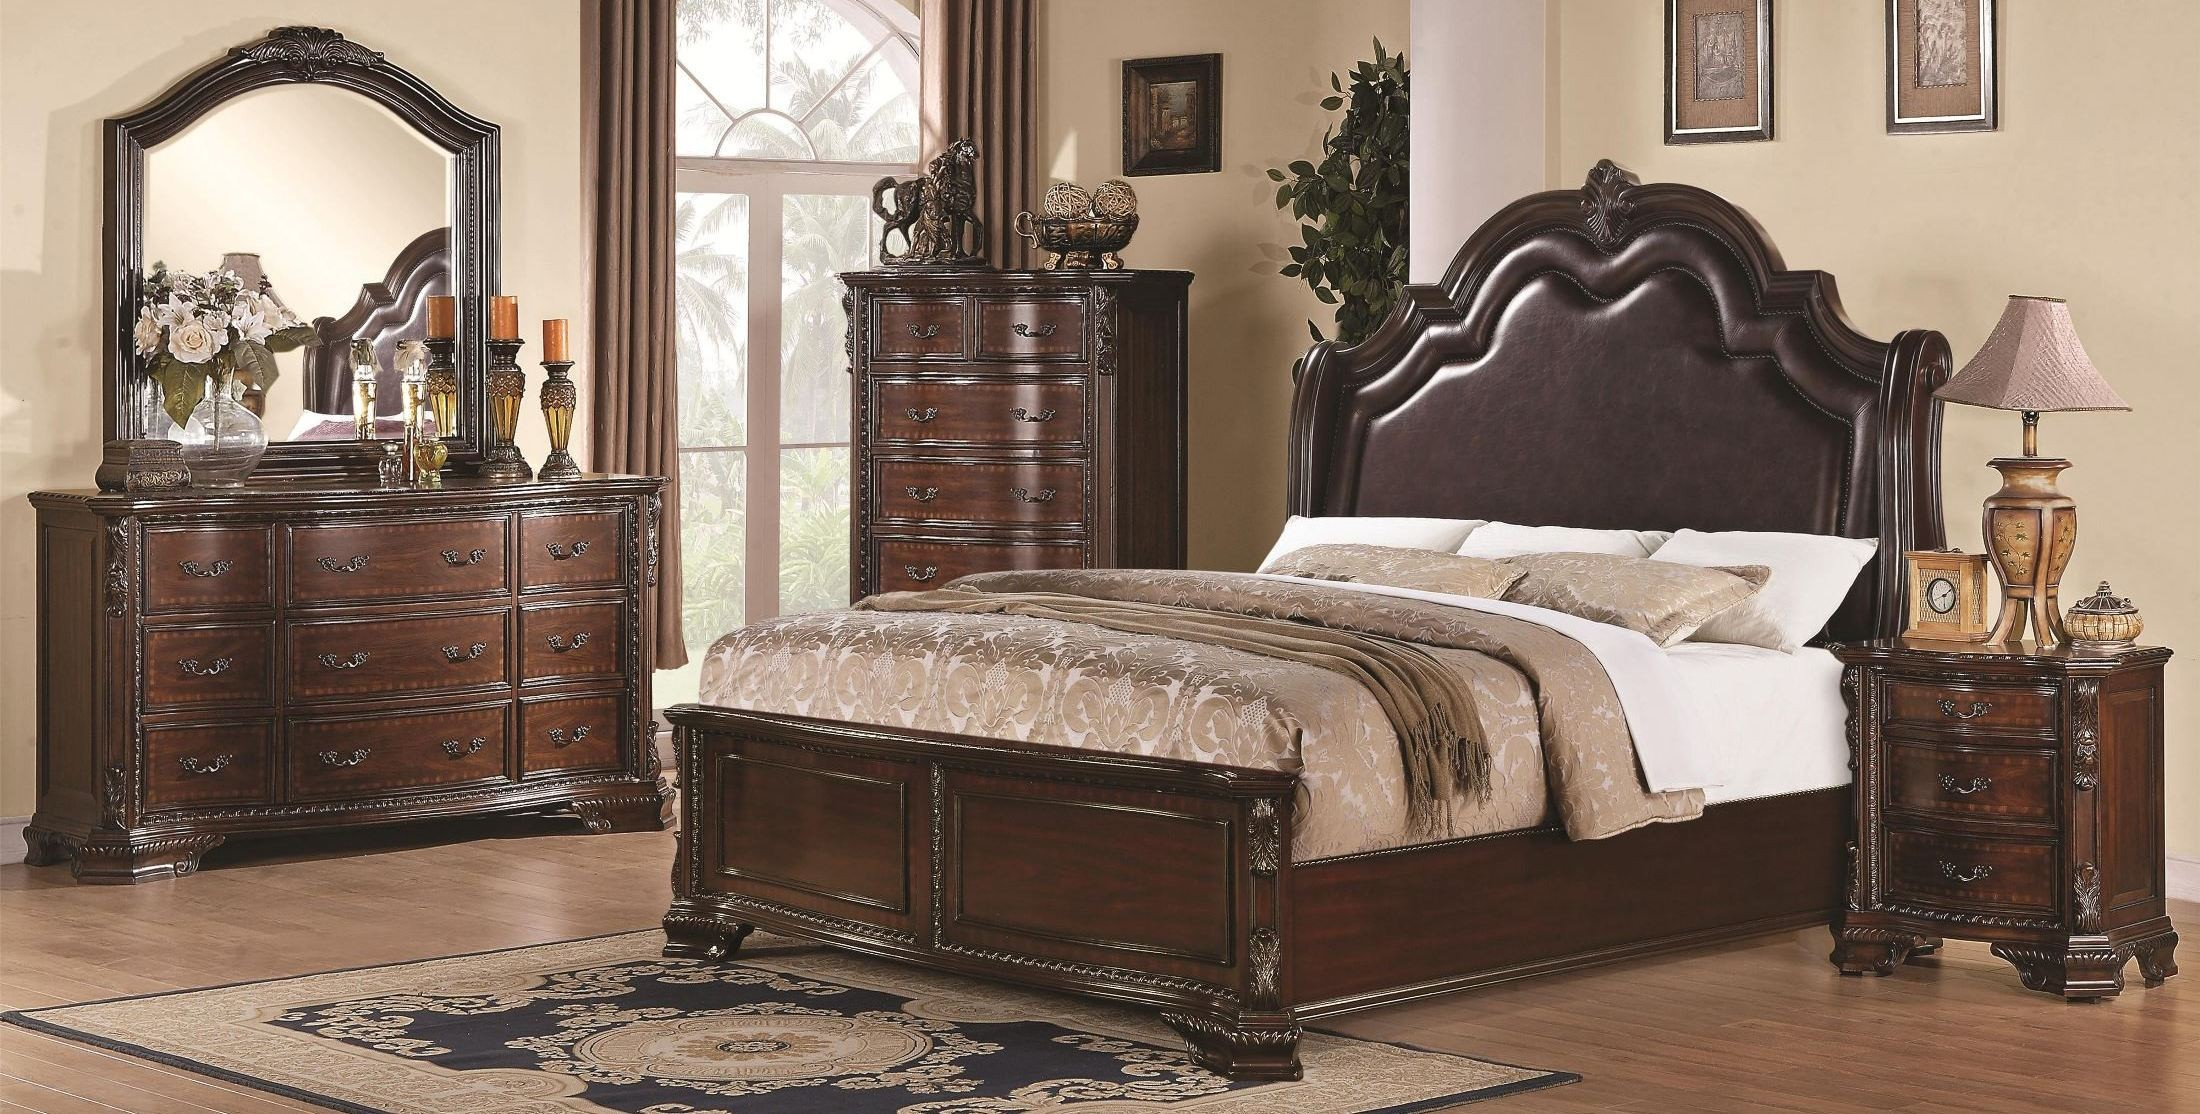 Maddison panel bedroom set from coaster 202261 coleman for B m bedroom furniture